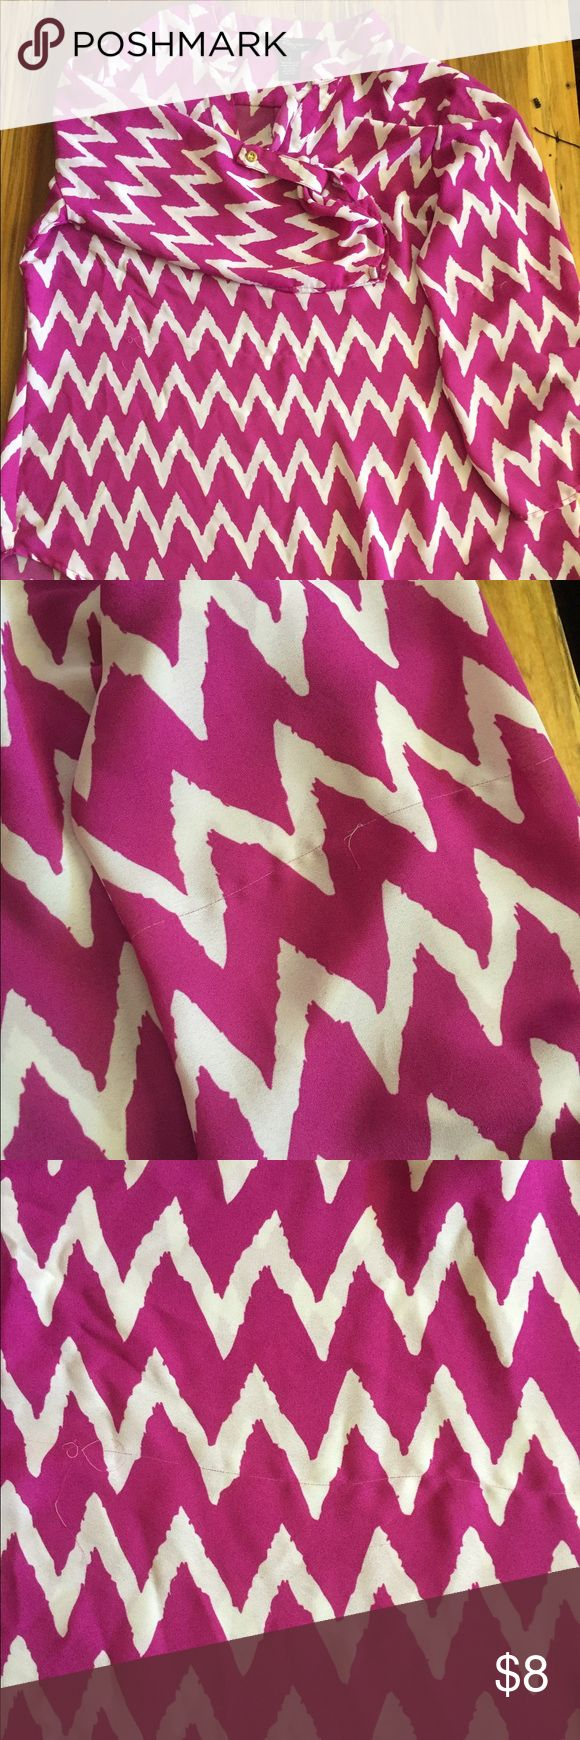 Chevron Top Flowing Chevron Top. Size L. Could be used as a coverup or a shirt. There are two pictures of damage that the shirt has. Tops Blouses